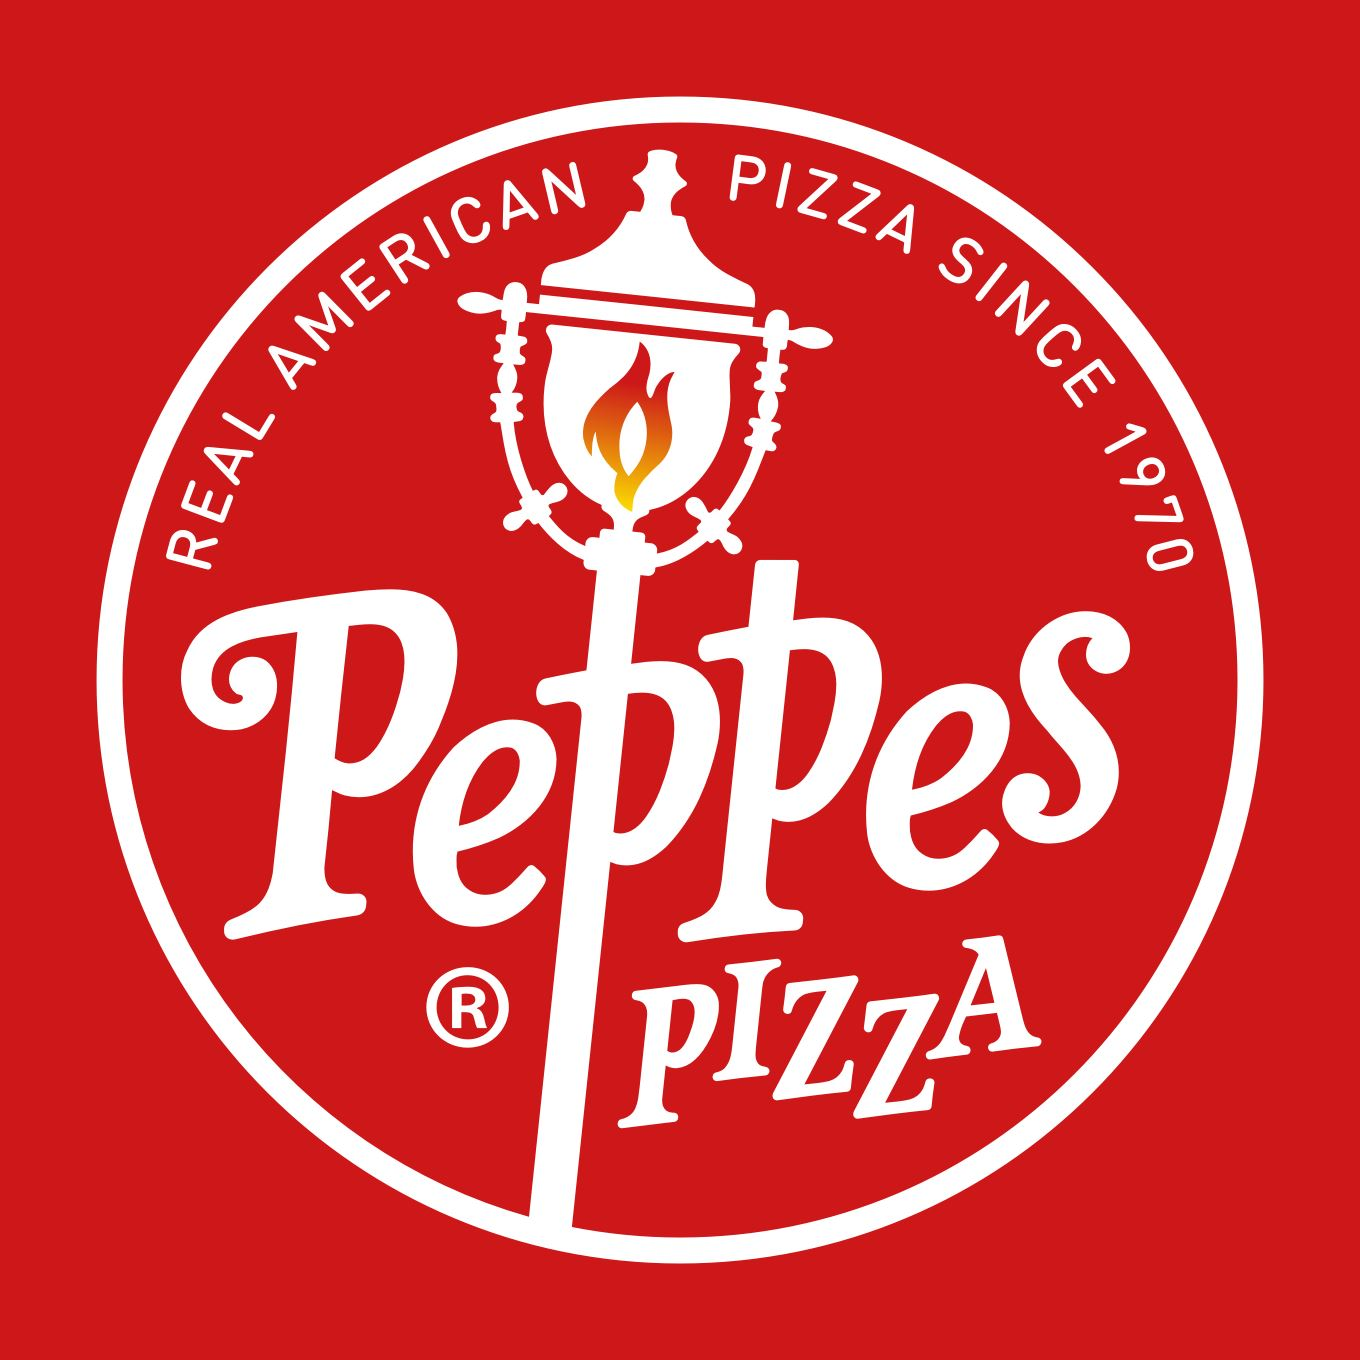 Peppes Pizza AS - Real American pizza since 1970!